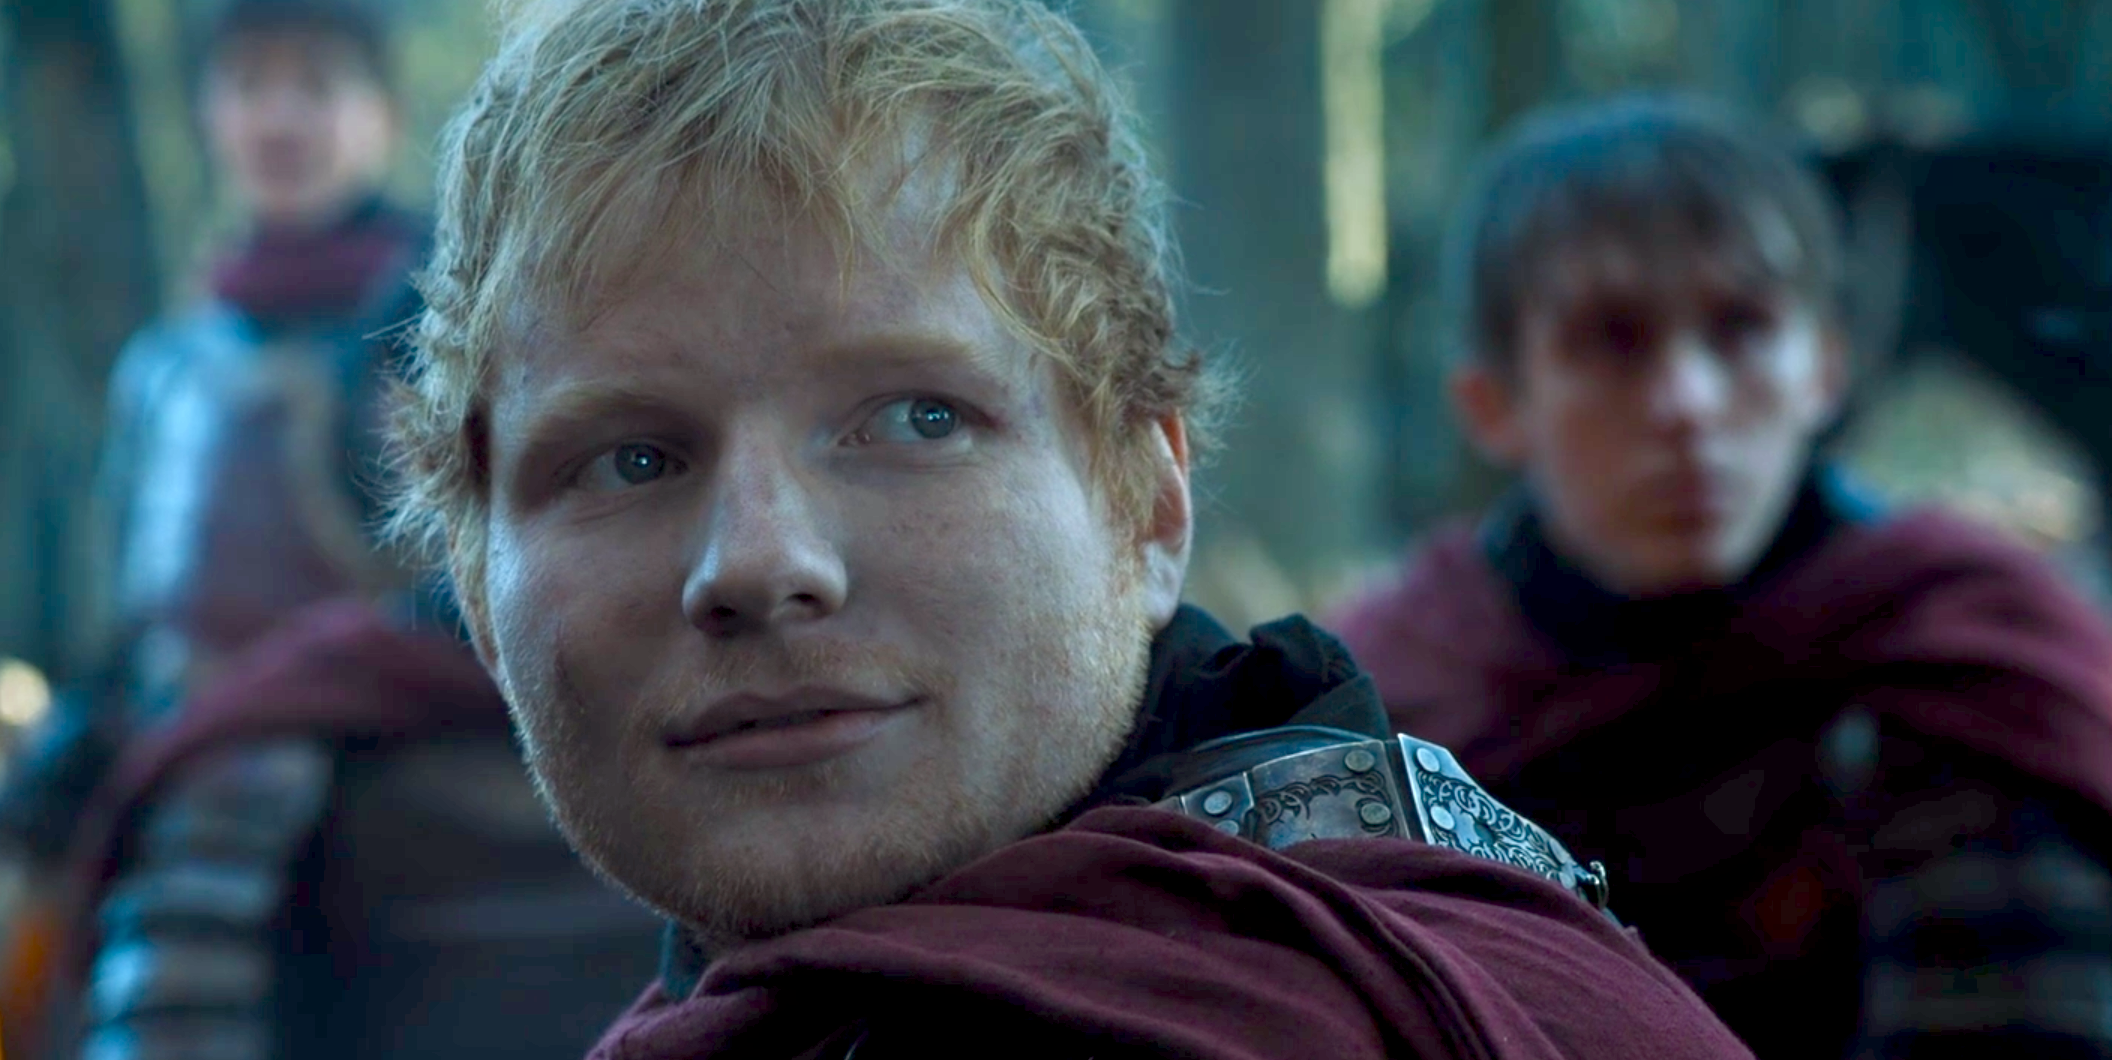 'Game of Thrones' Finally Revealed What Happened to Ed Sheeran's Character and It's Awful